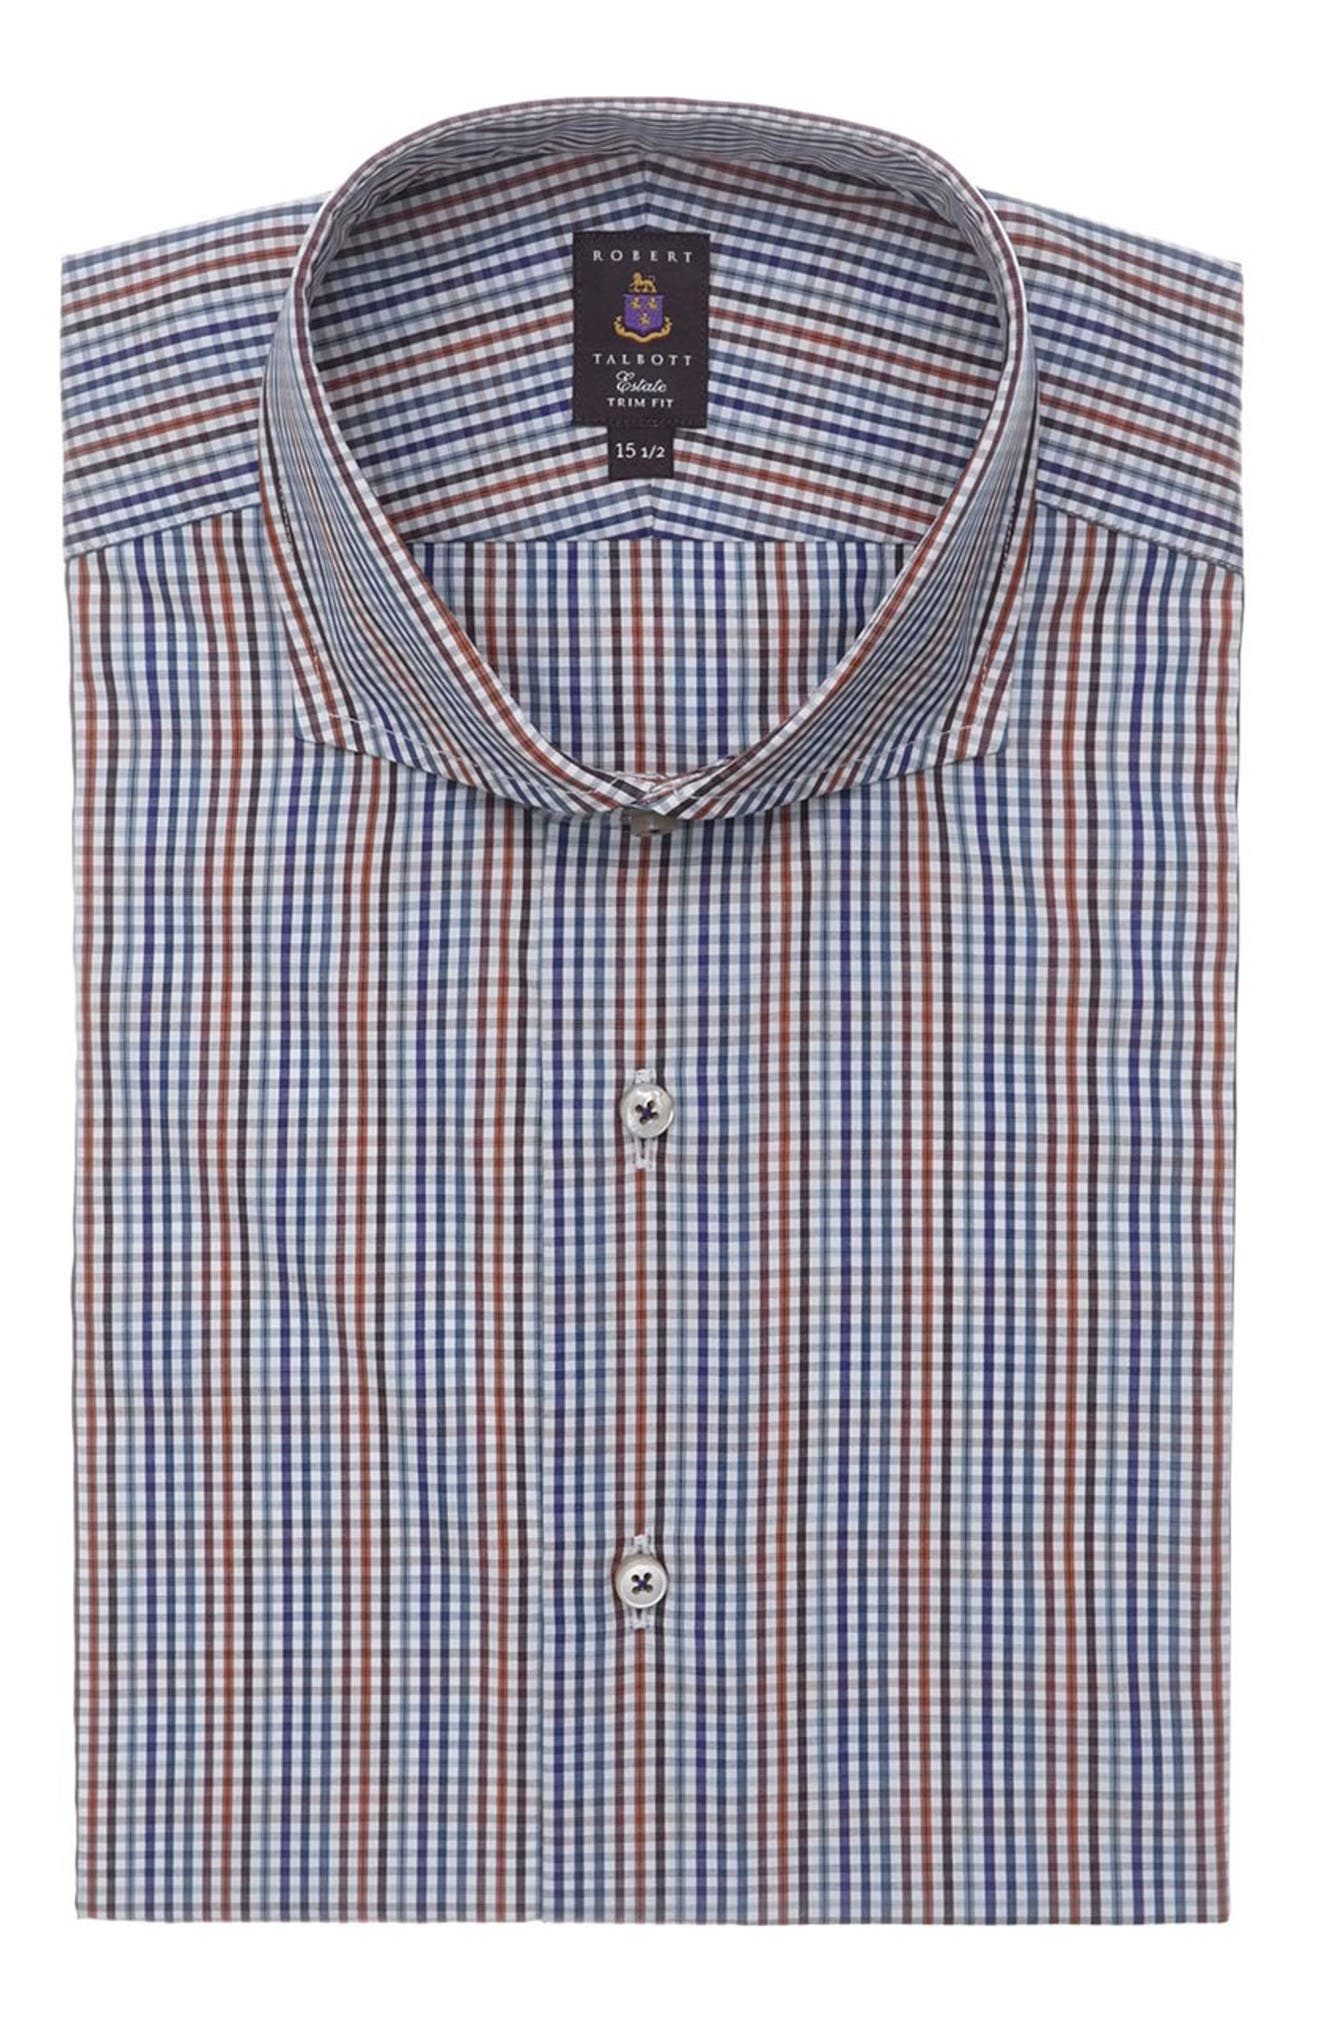 Tailored Fit Check Dress Shirt,                         Main,                         color, Blue Multi